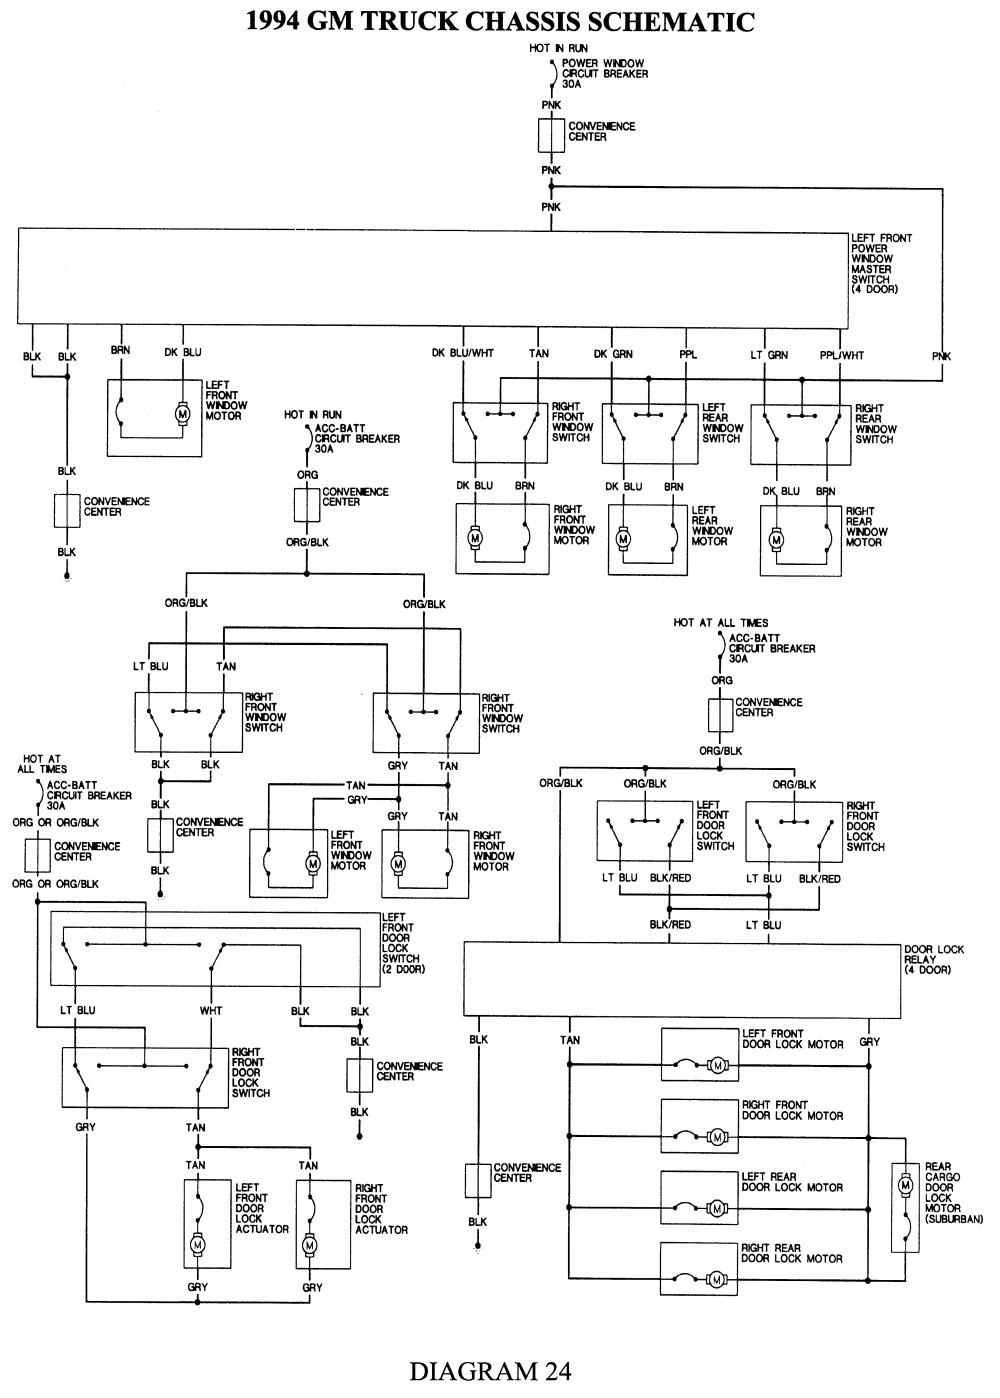 1998 Chevy S10 Radio Wiring Diagram Collection